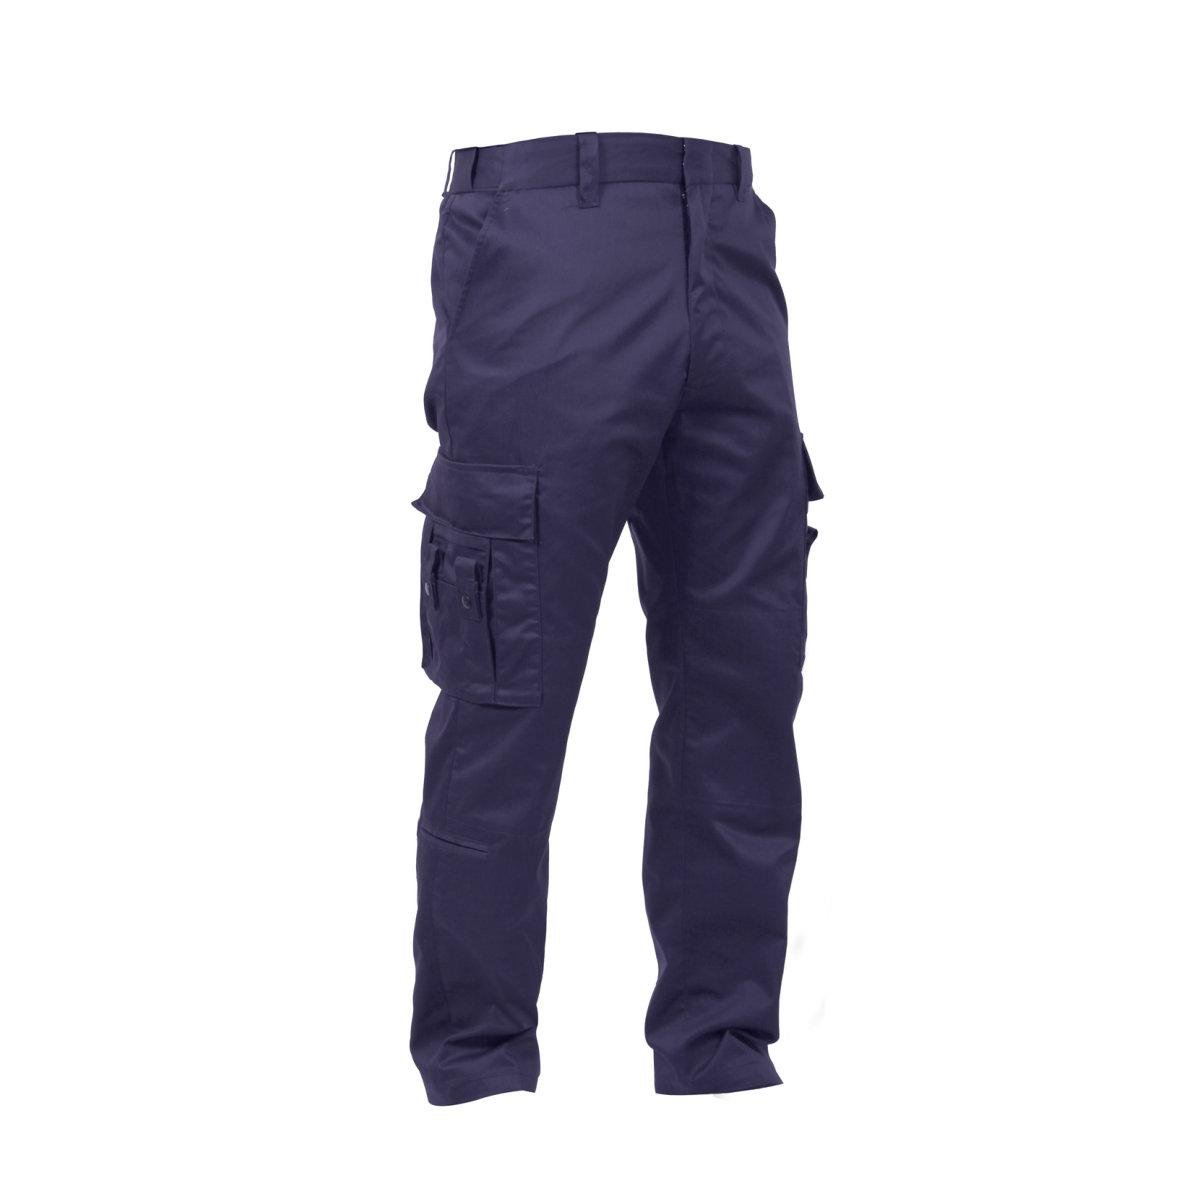 Rothco Deluxe EMT Pants 392330